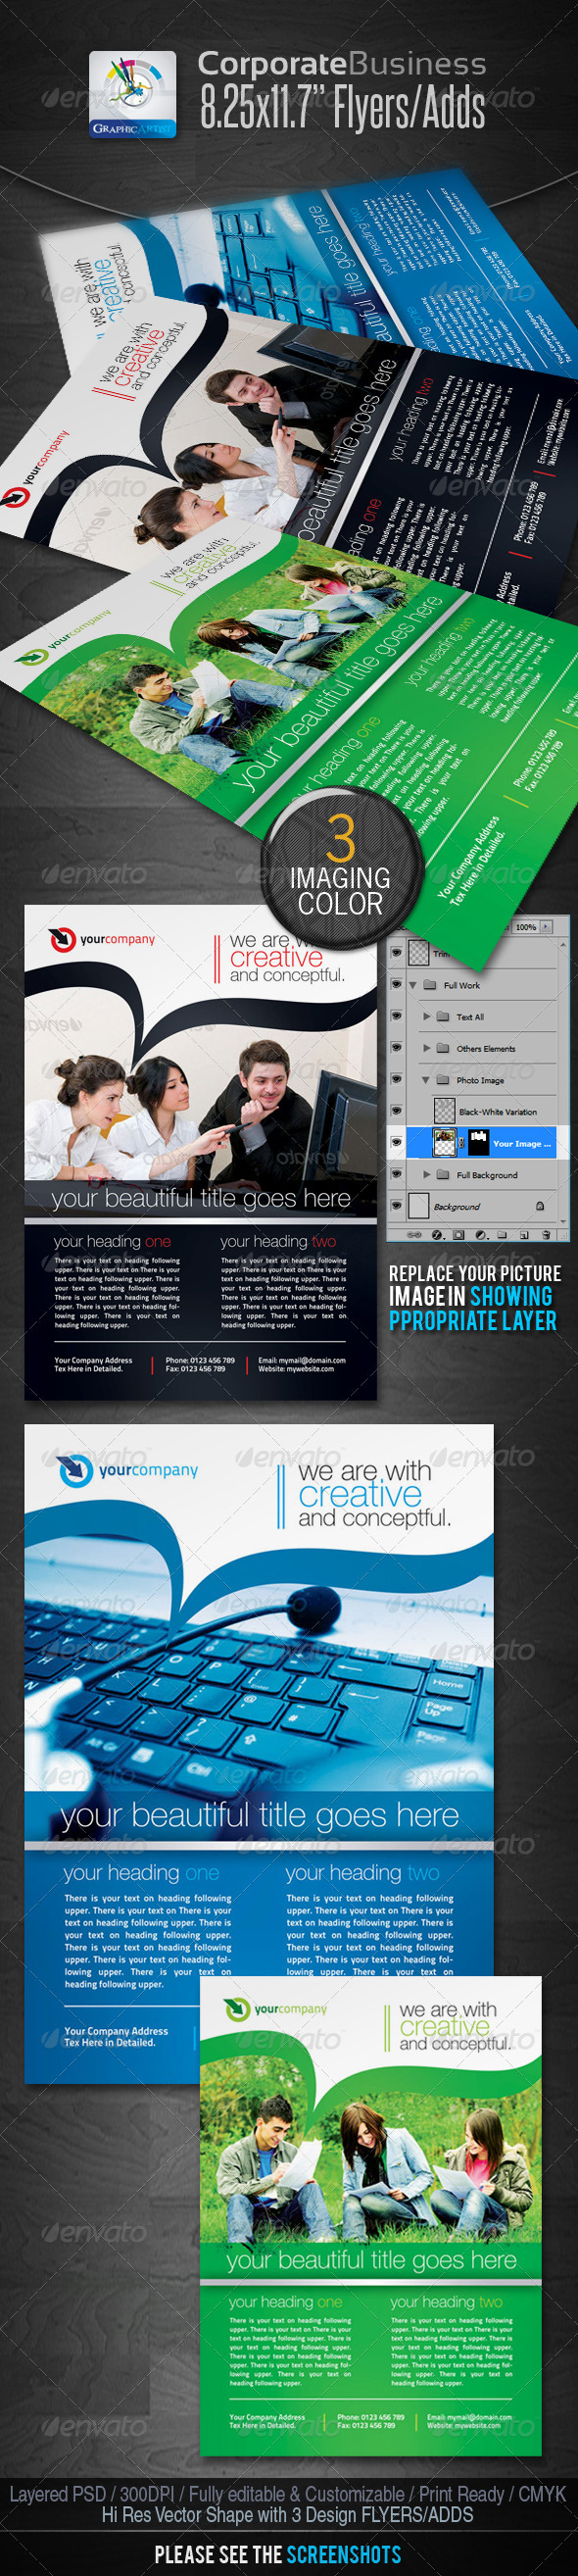 Corporate Business Flyers/Ads - Corporate Flyers